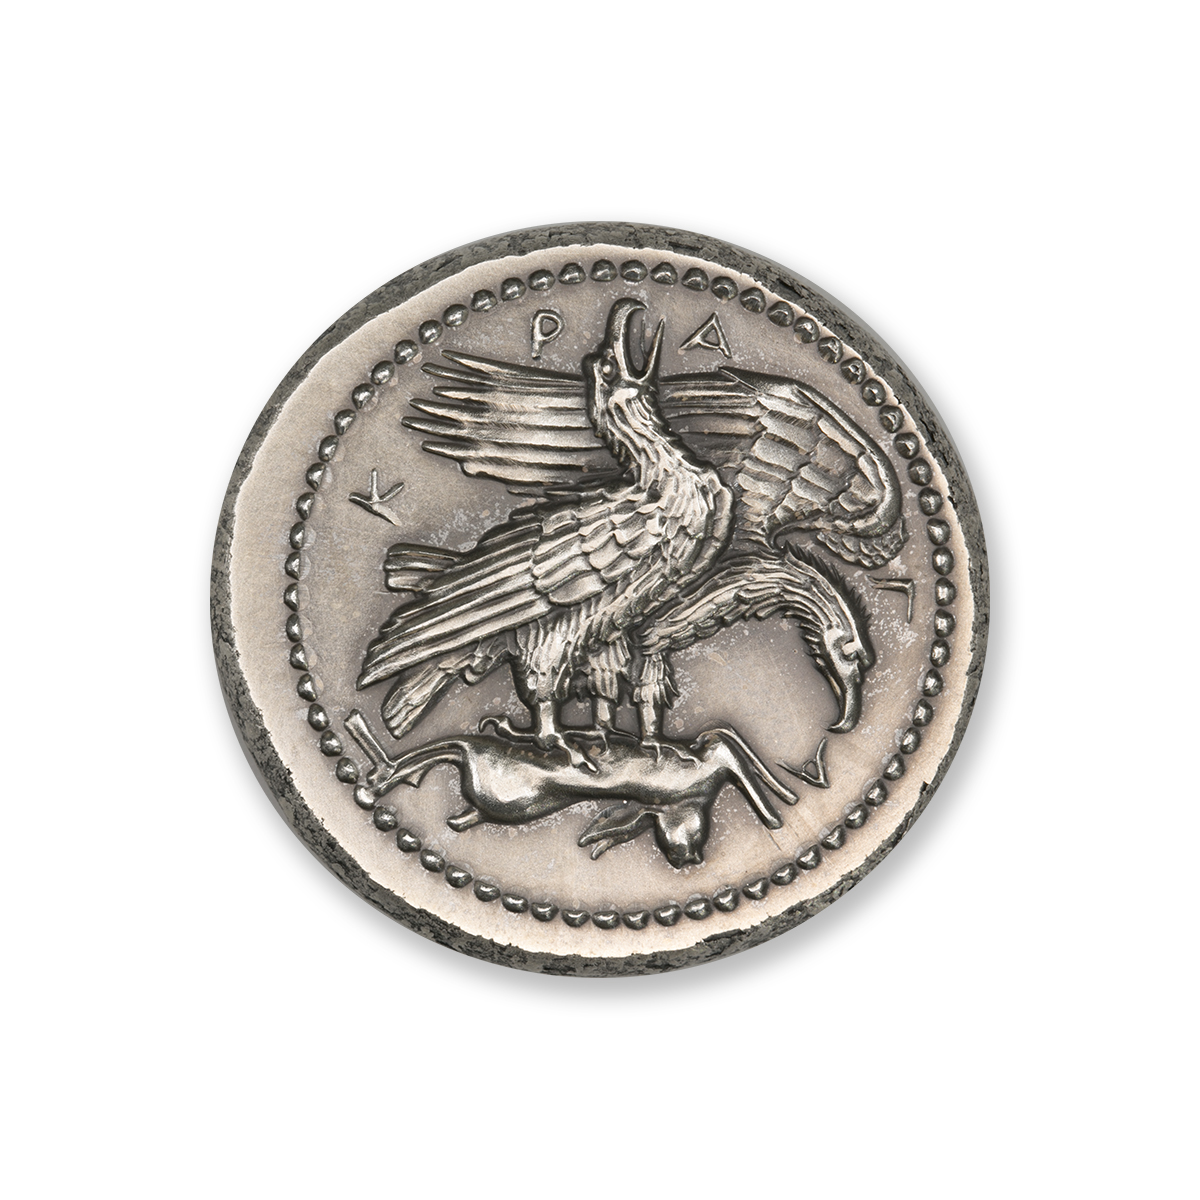 TETRADRACHM OF AKRAGAS – TWO EAGLES AND HARE – UHR – 2 TROY OUNCE – 36MM – PATINA